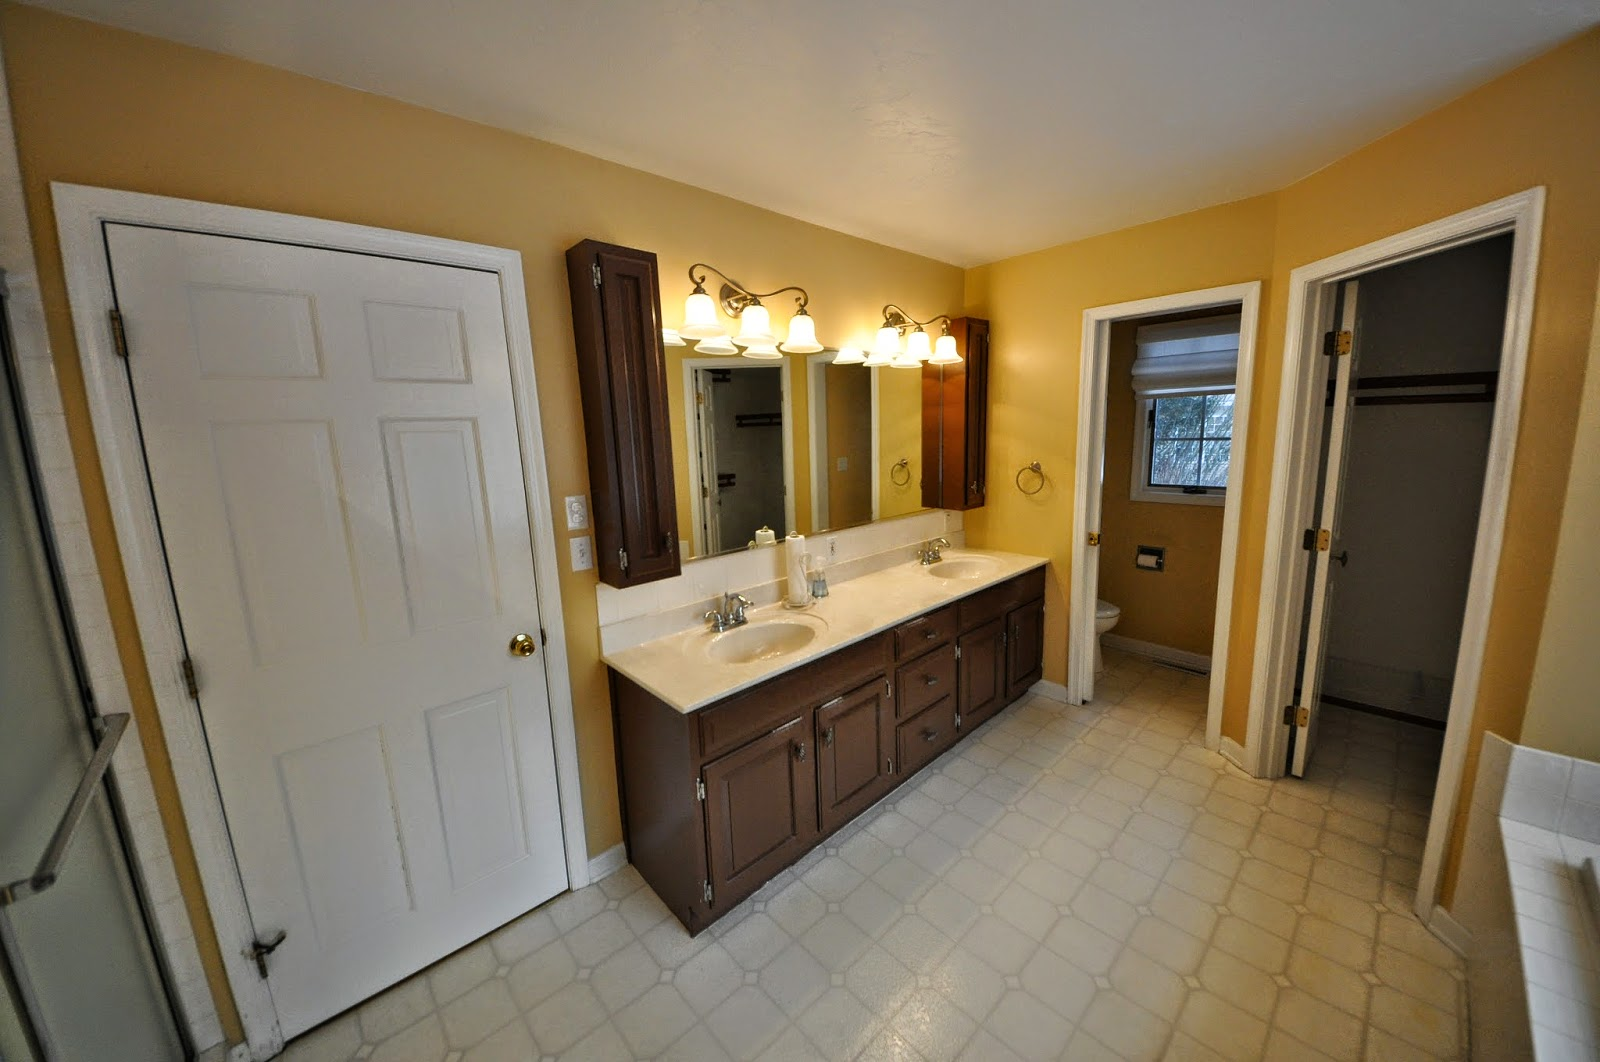 ERIC MARKS GENERAL CONTRACTING: MASTER BATH REMODEL